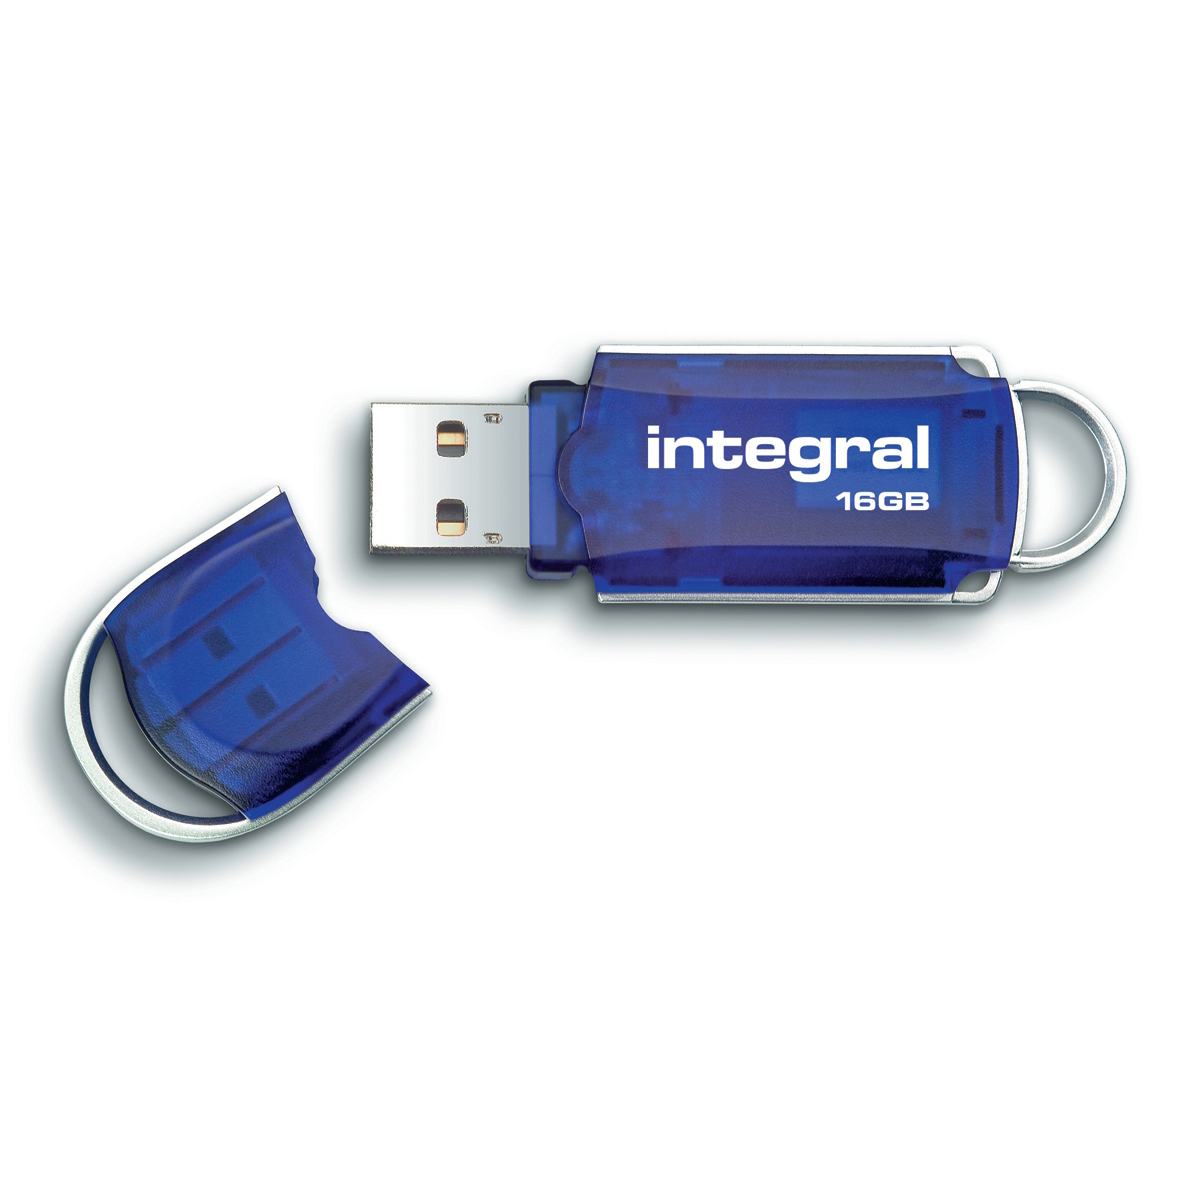 Integral Courier Flash Drive USB 3.0 Blue 16GB Ref INFD16GBCOU3.0